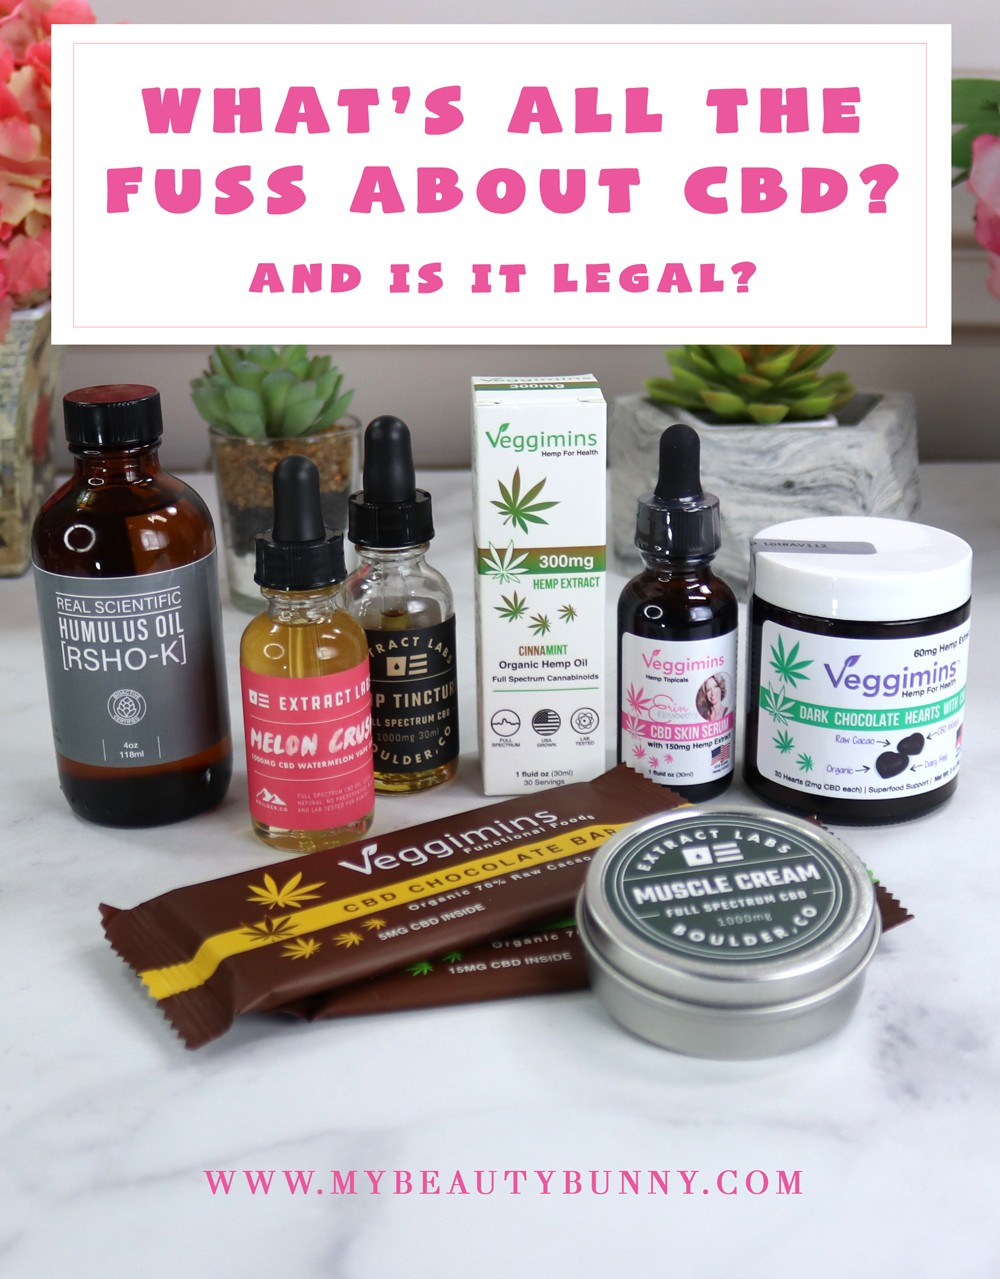 What is CBD used for and is it legal?